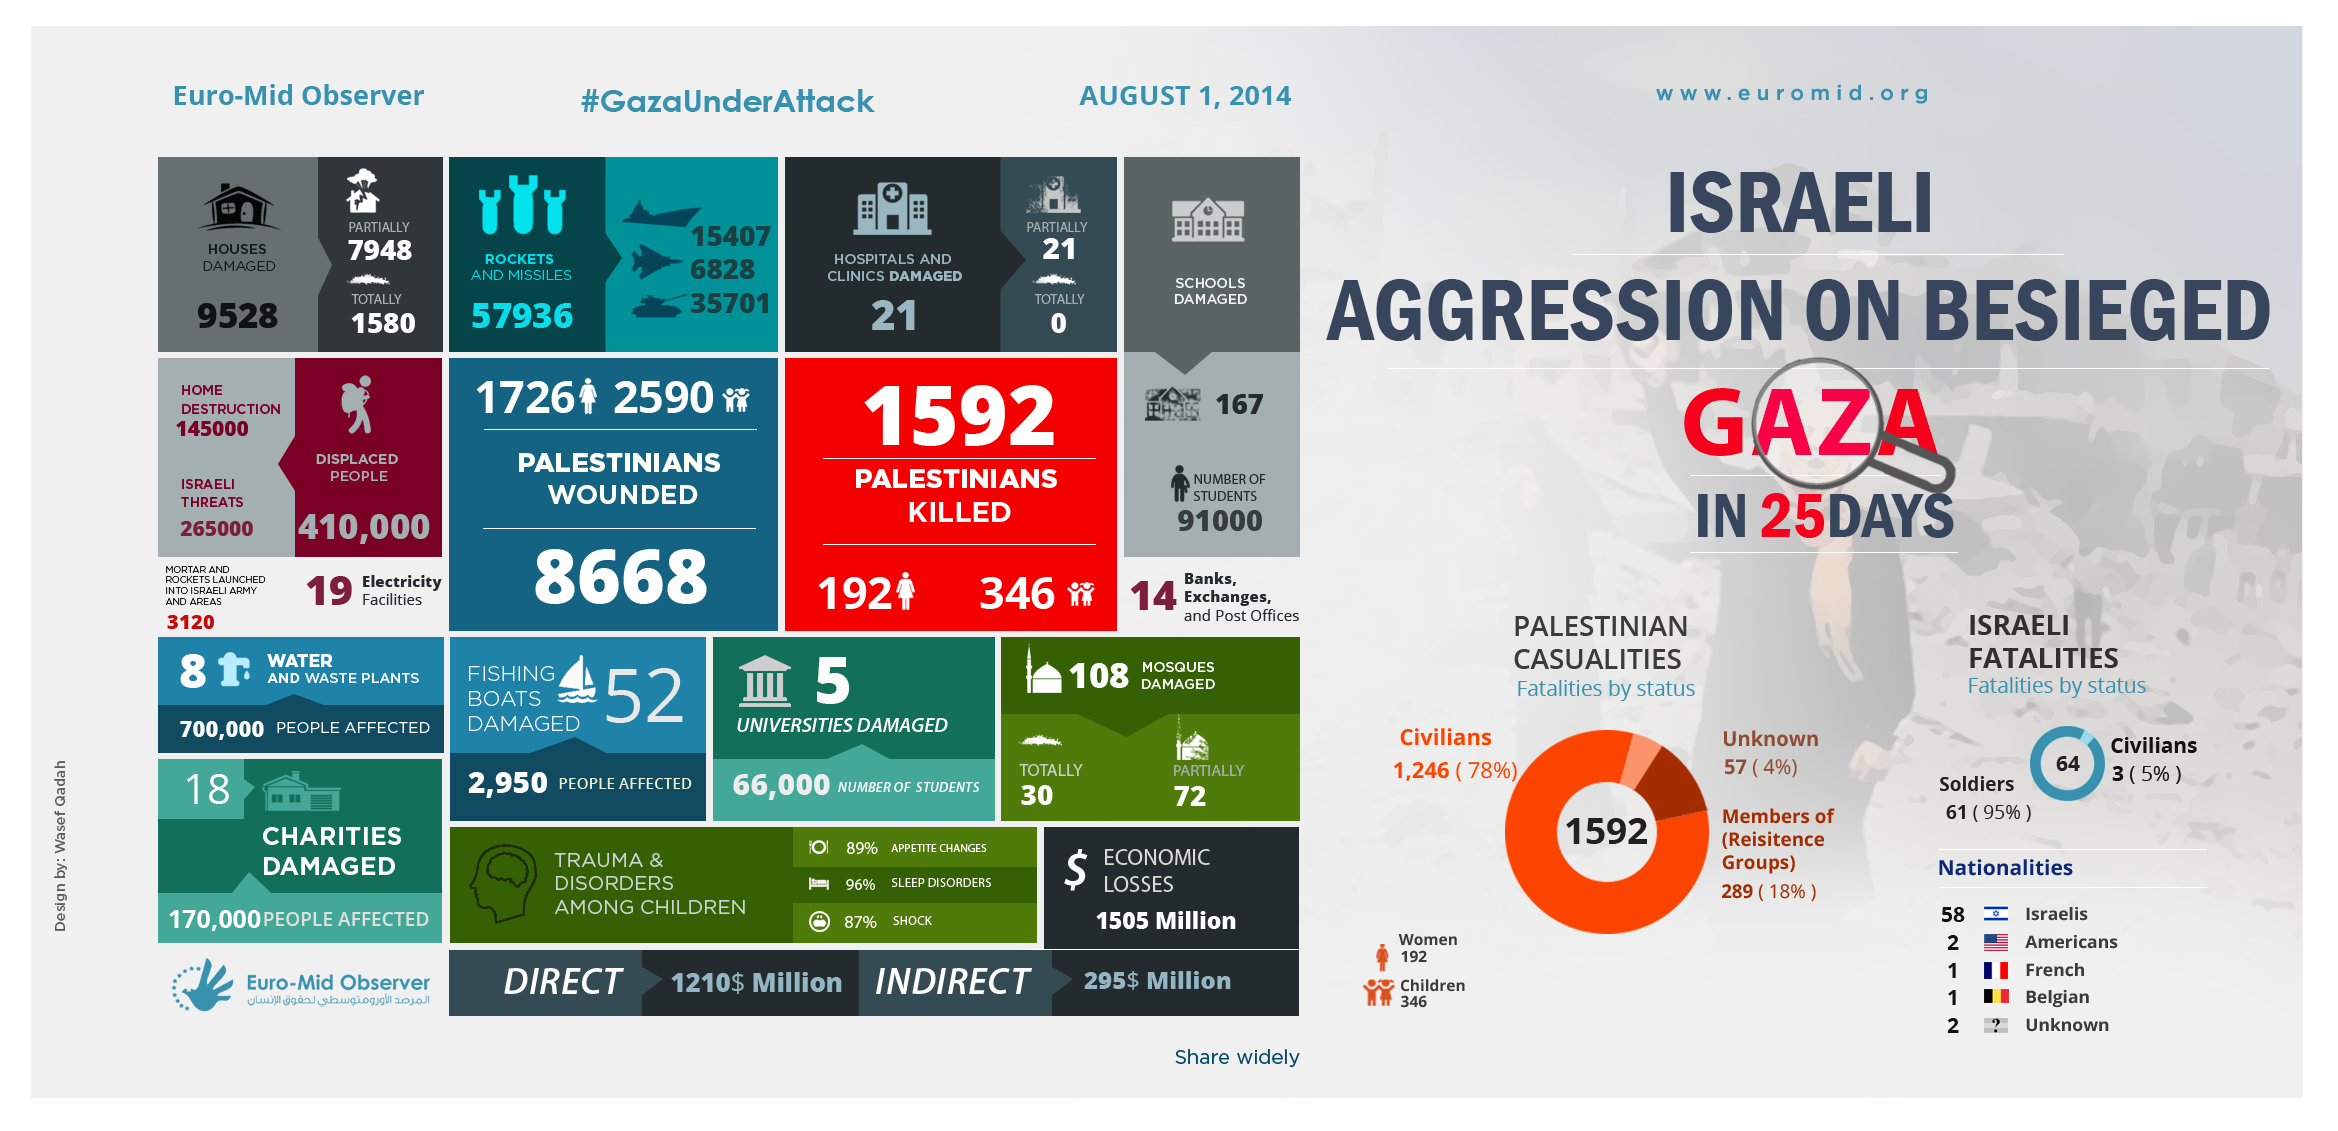 Israeli Aggression on besieged Gaza in 25 Days